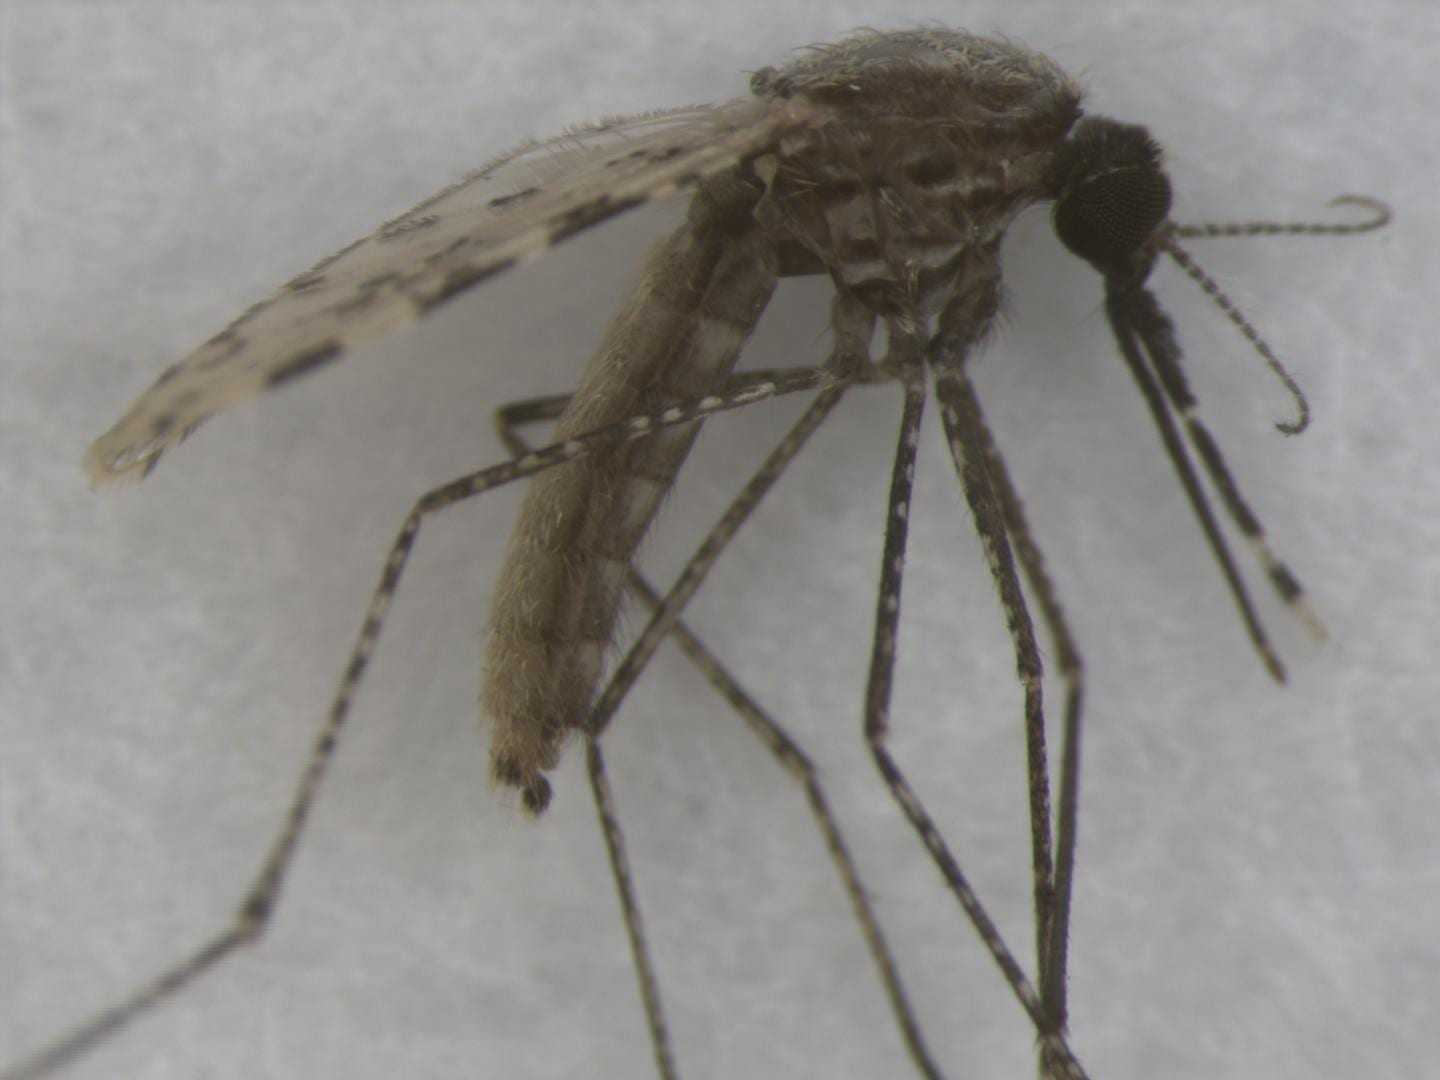 Representative specimen image of Anopheles stephensi from Mosquito Image Database. Picture shows a mosquito stored by freezing at -80C. CREDIT Couret, J. et al. 2020 (CC-BY 2.0)